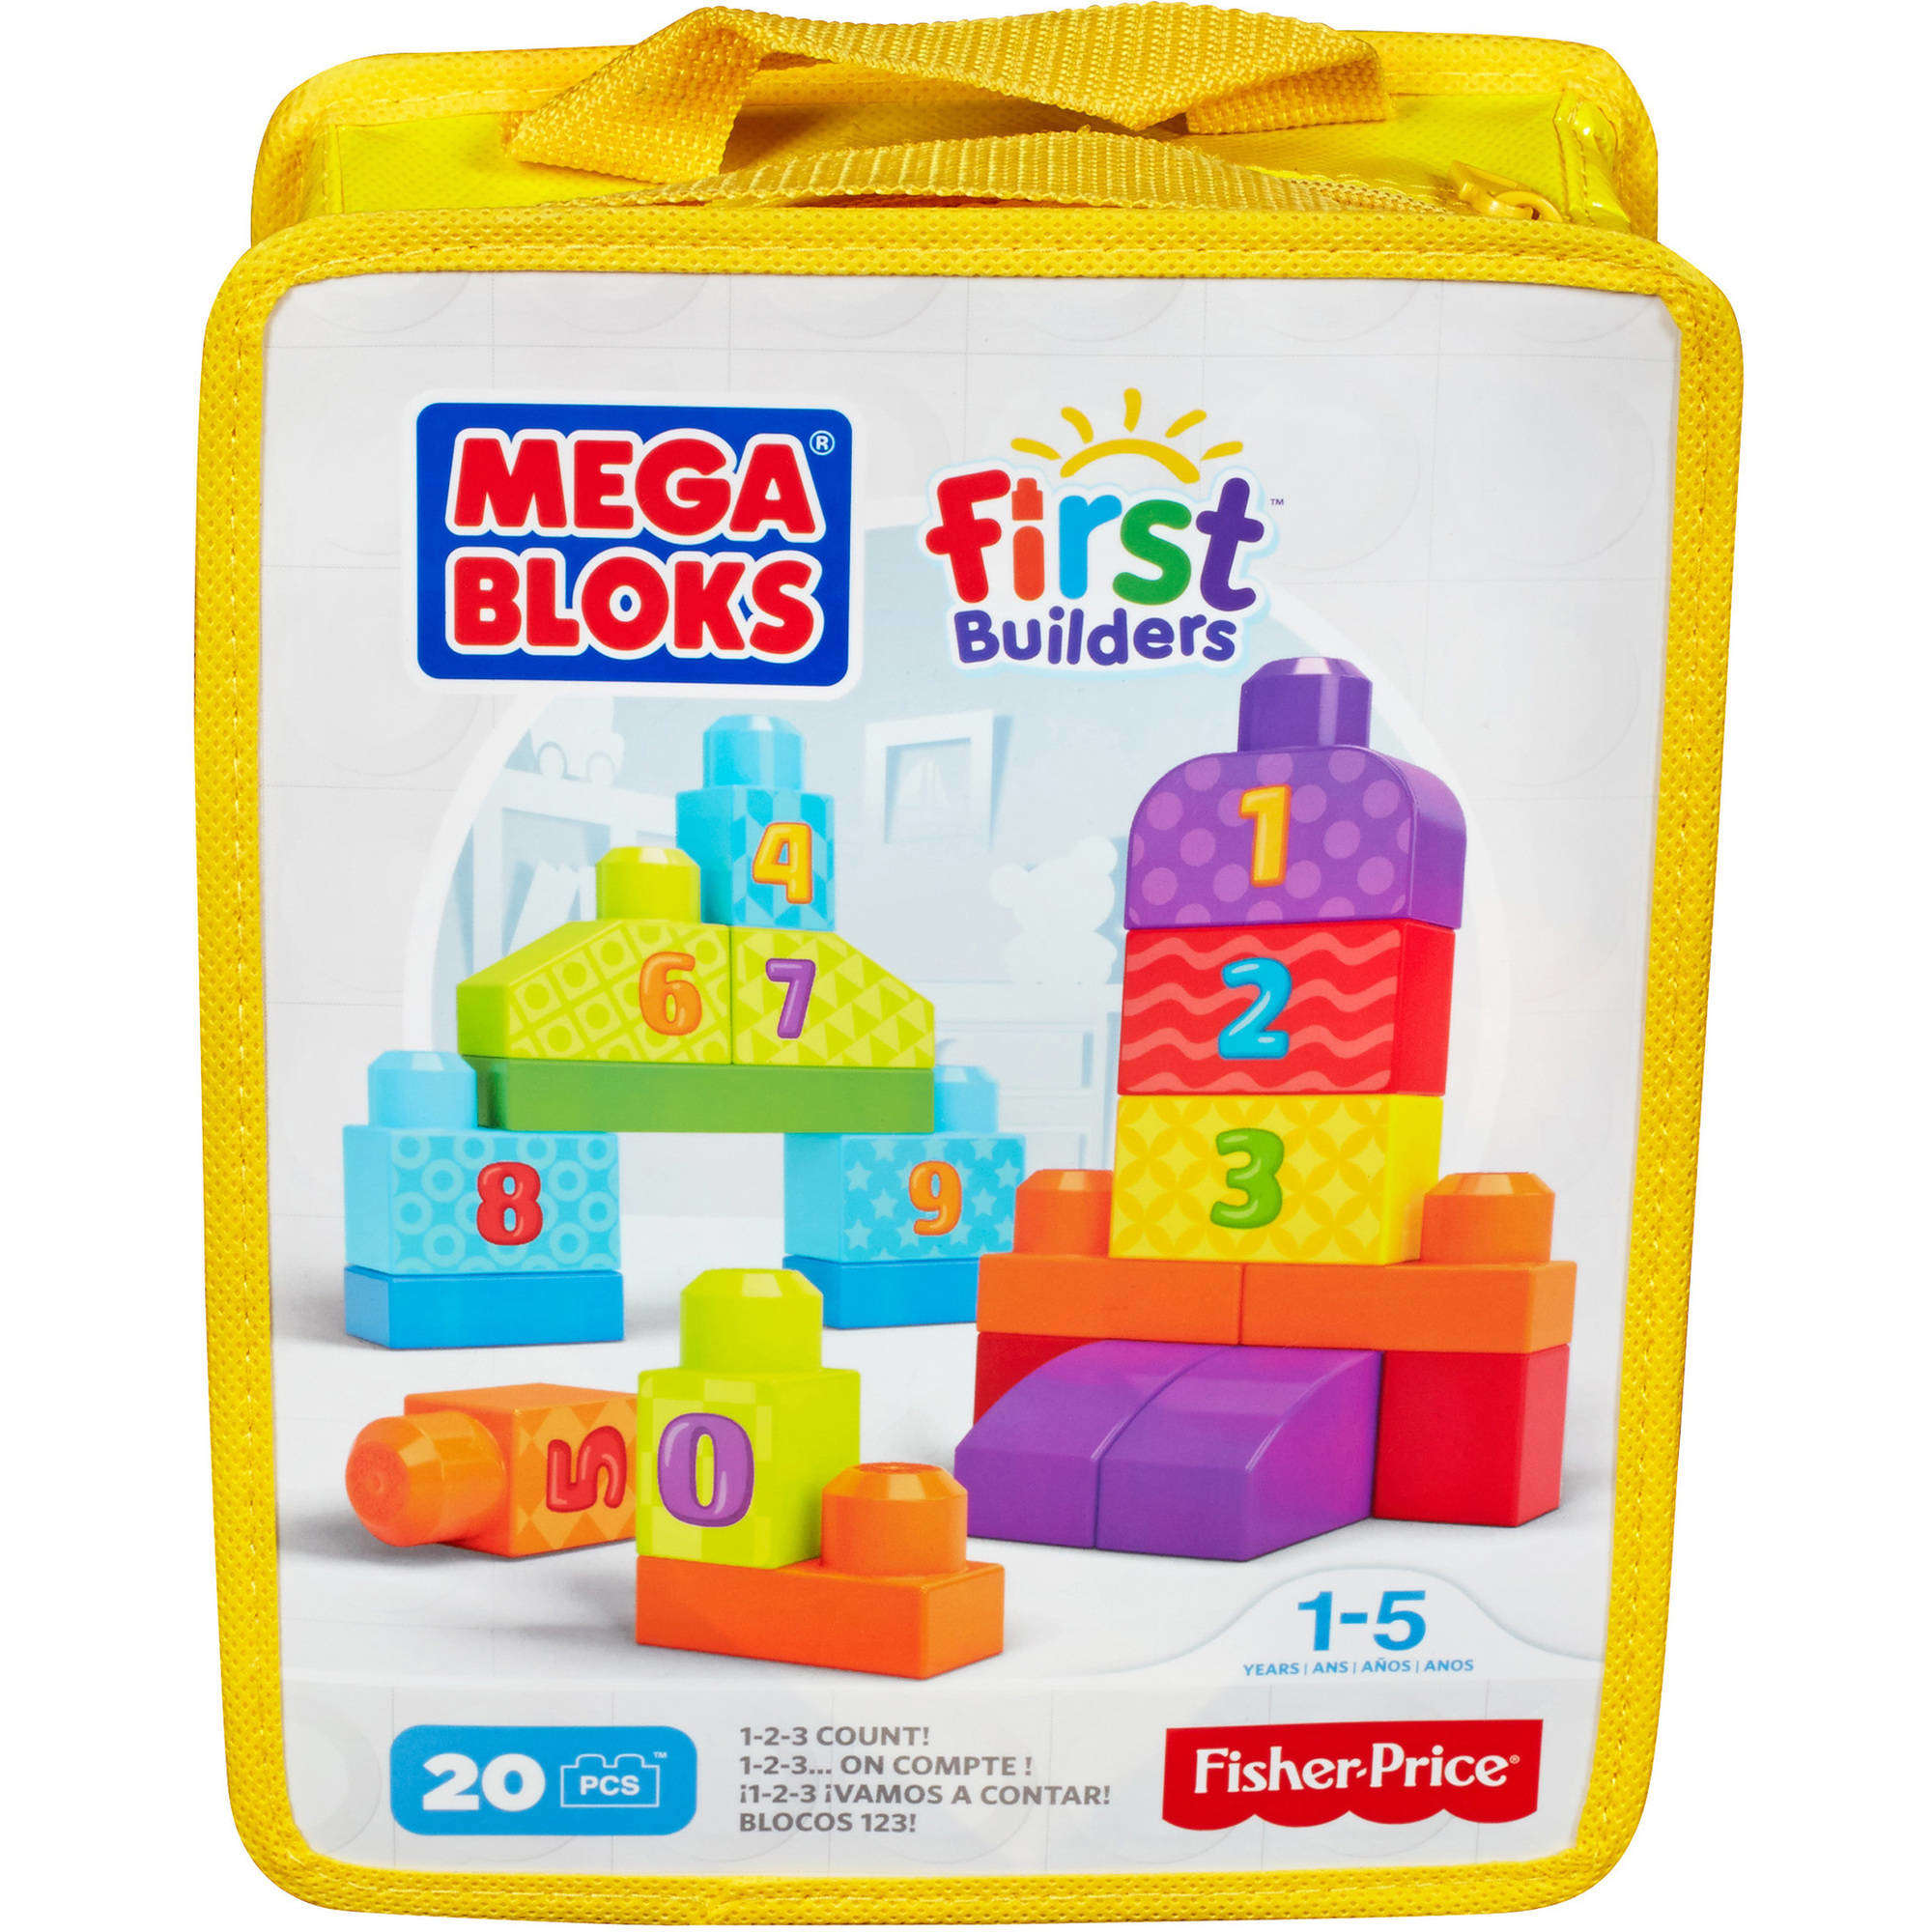 Mega Bloks First Builders 1-2-3 Count Playset by Mega Bloks